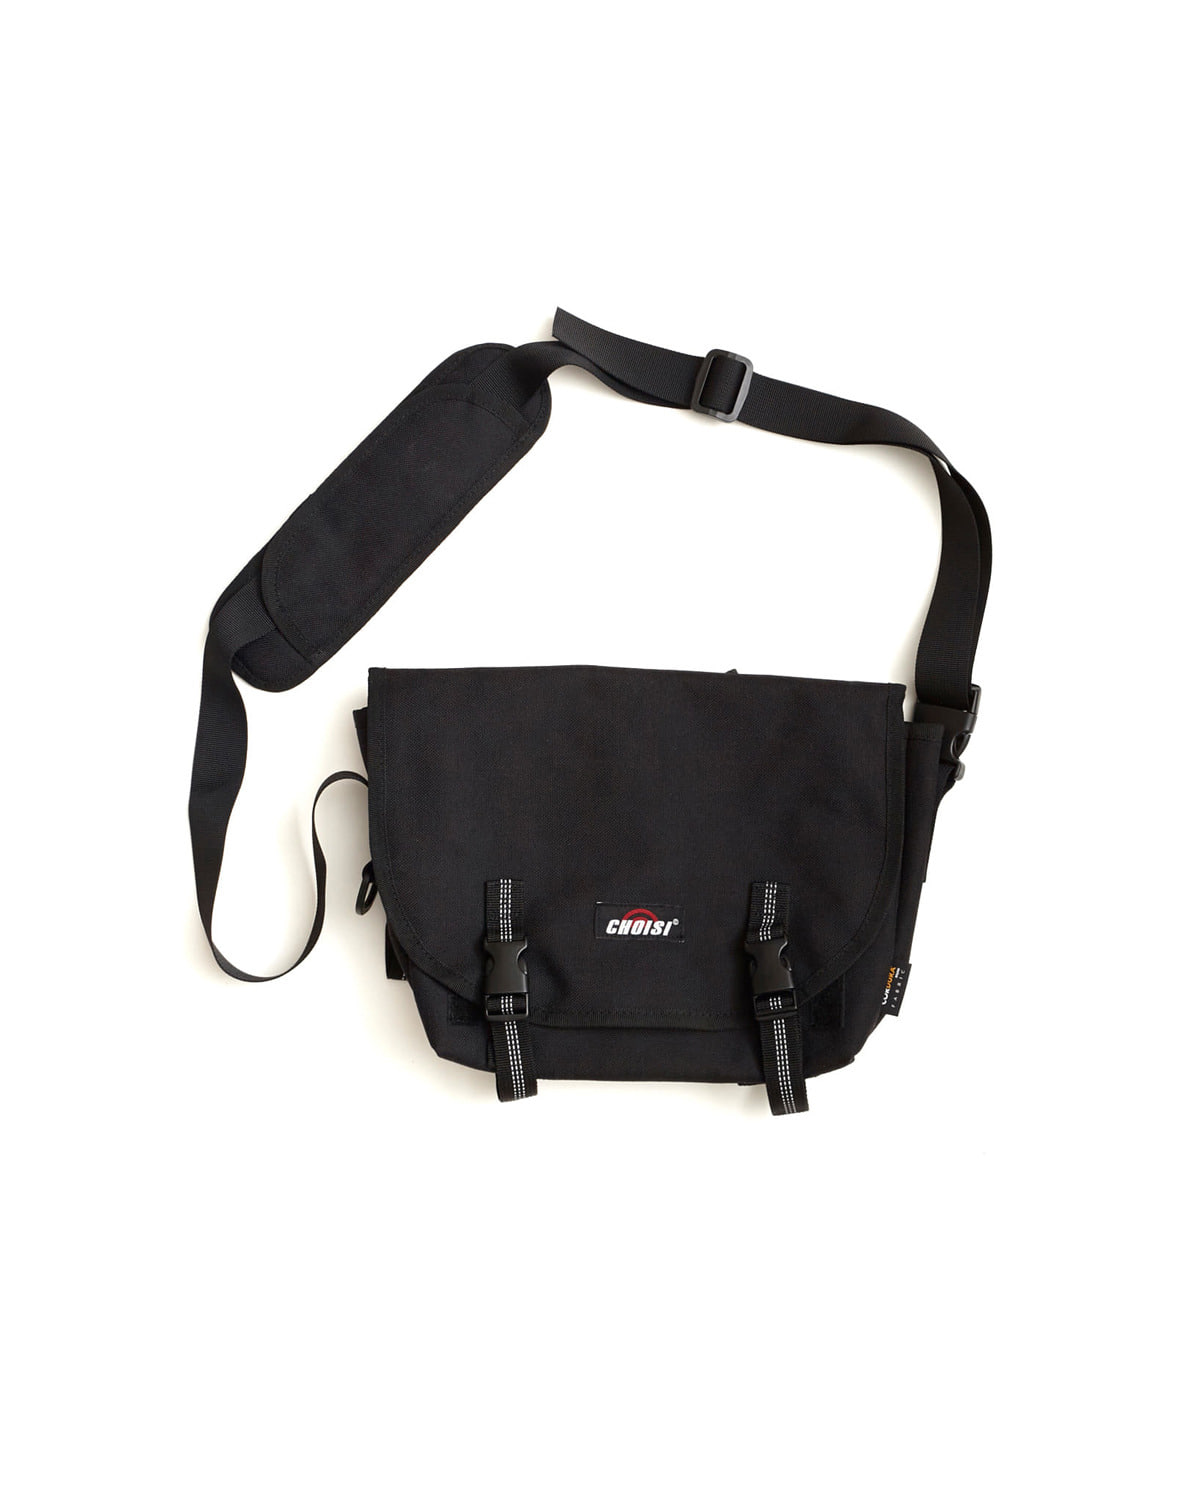 Buckle Waist bag, Black